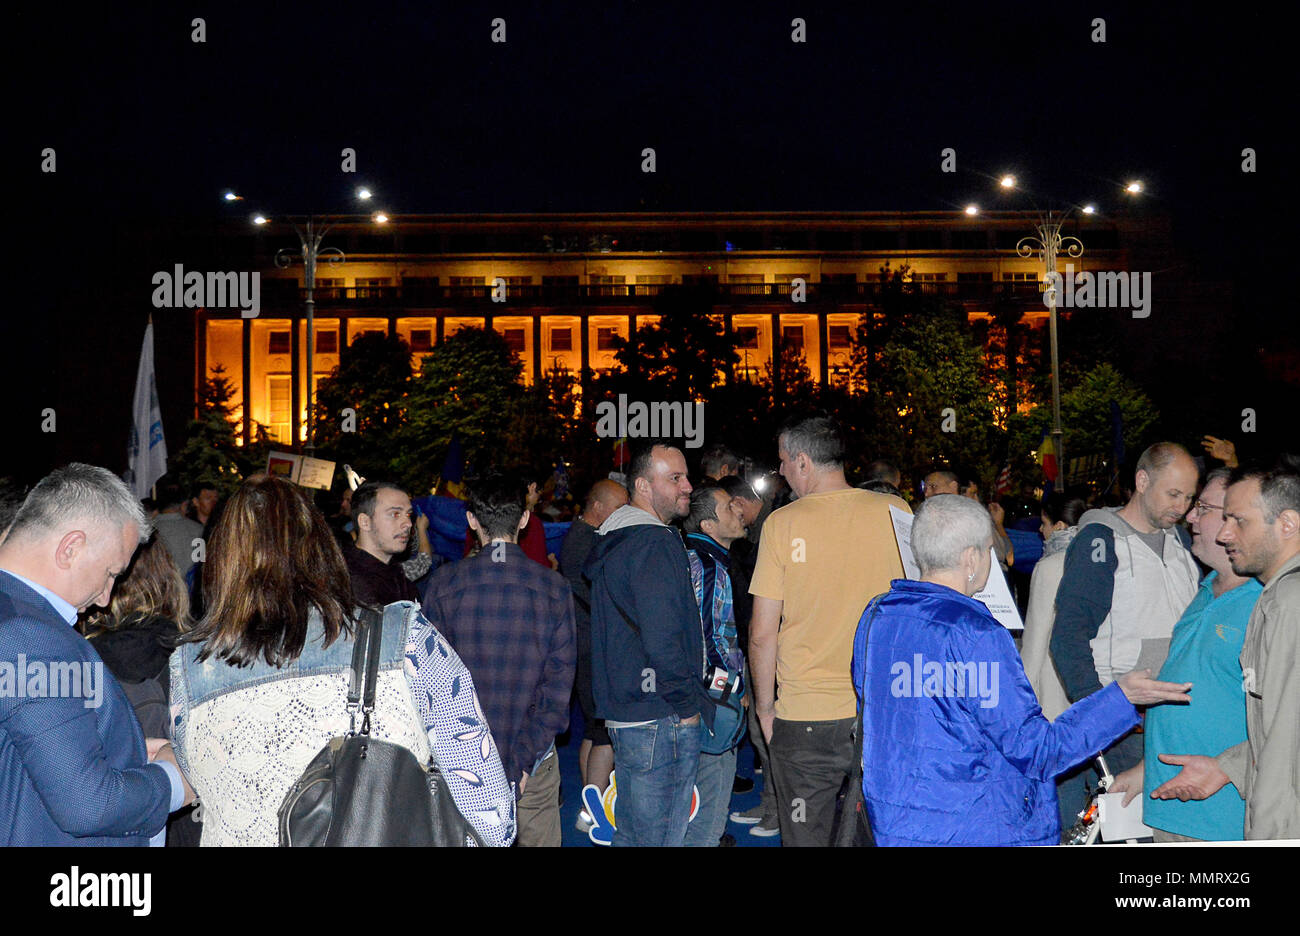 Bucharest, Romania. 12th May 2018.  Protestors outside the Romanian Fovernment Buildings demanding justice and the rule of law Credit: Douglas MacKenzie/Alamy Live News - Stock Image